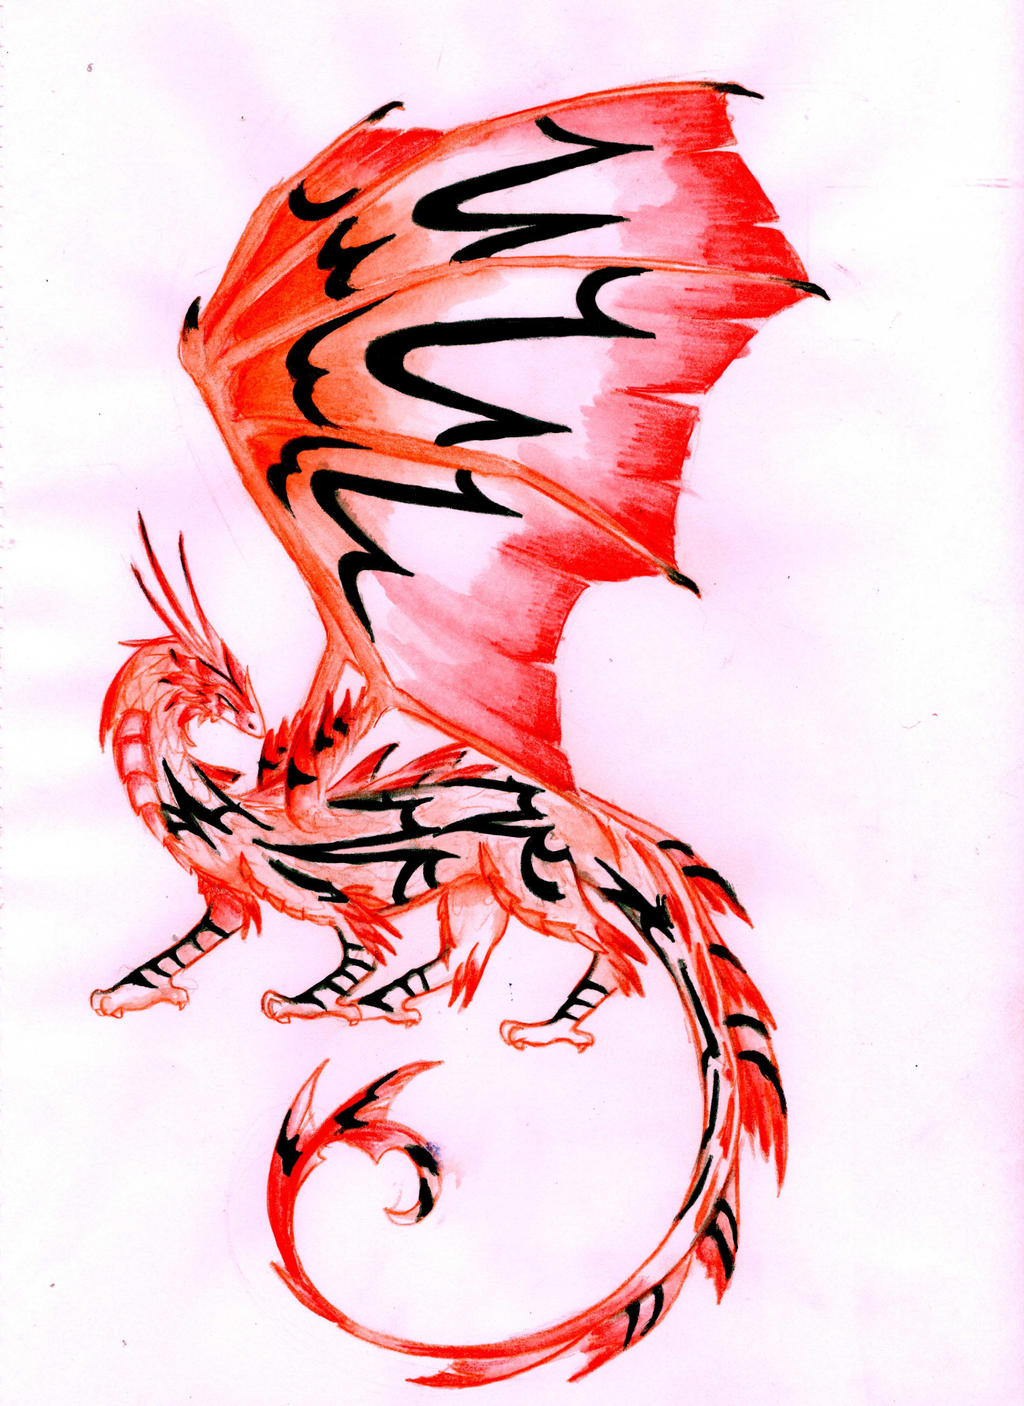 Blackstripe Firewing Dragon by BlazeTheConqueror